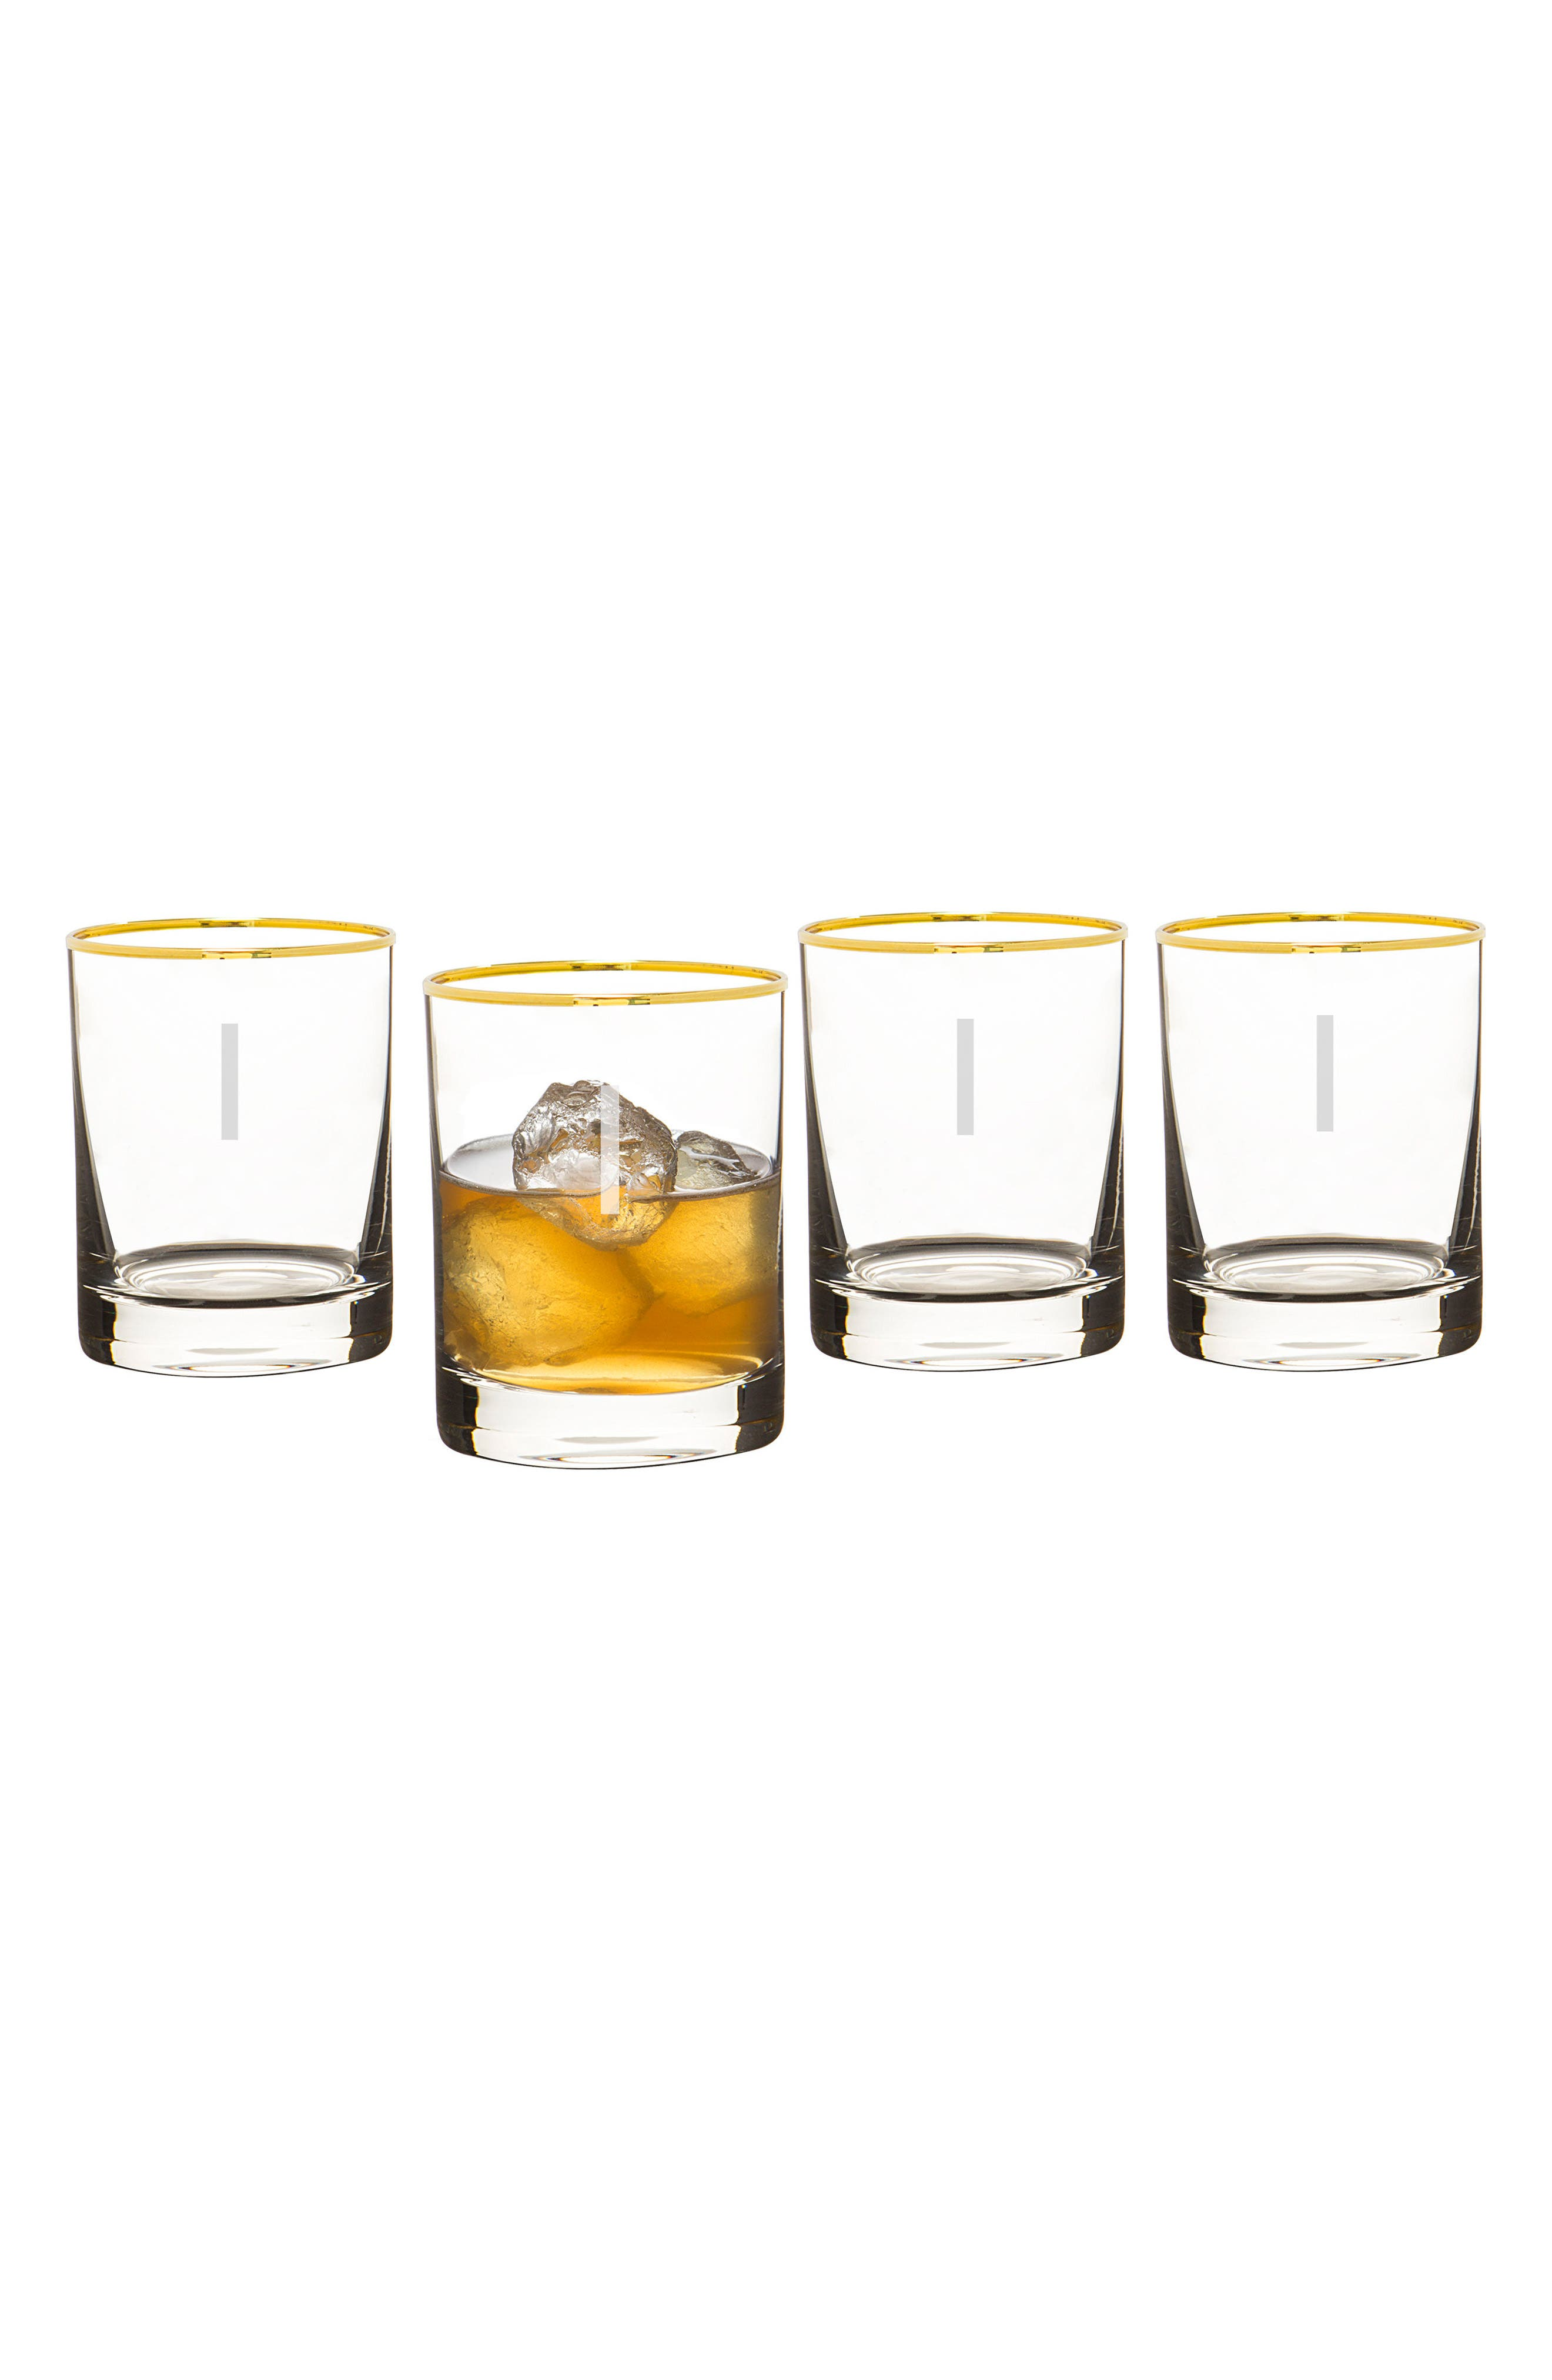 Monogram Set of 4 Double Old Fashioned Glasses,                             Main thumbnail 10, color,